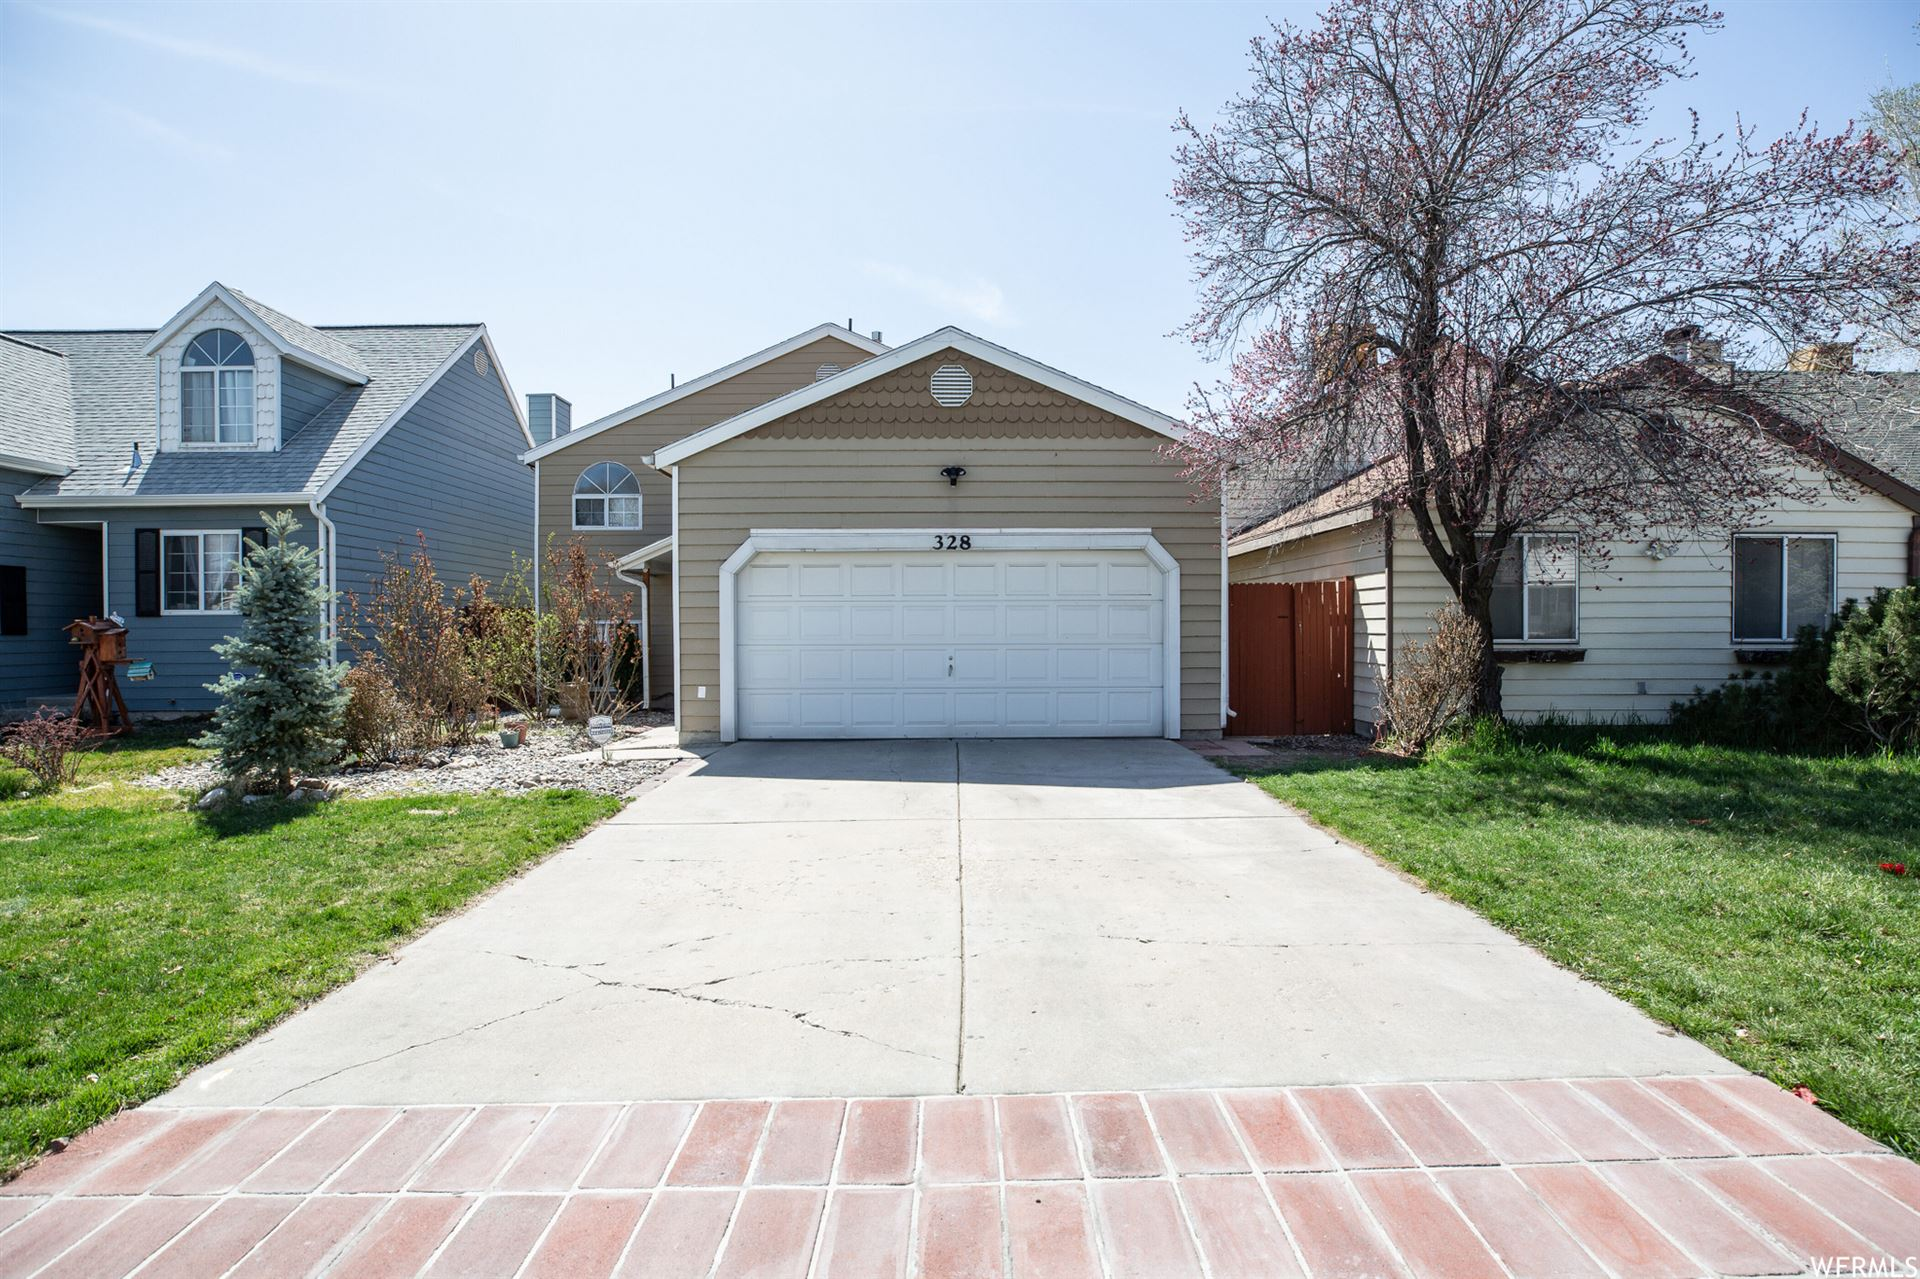 Photo of 328 E PARK CREEKE LN, Salt Lake City, UT 84115 (MLS # 1734385)